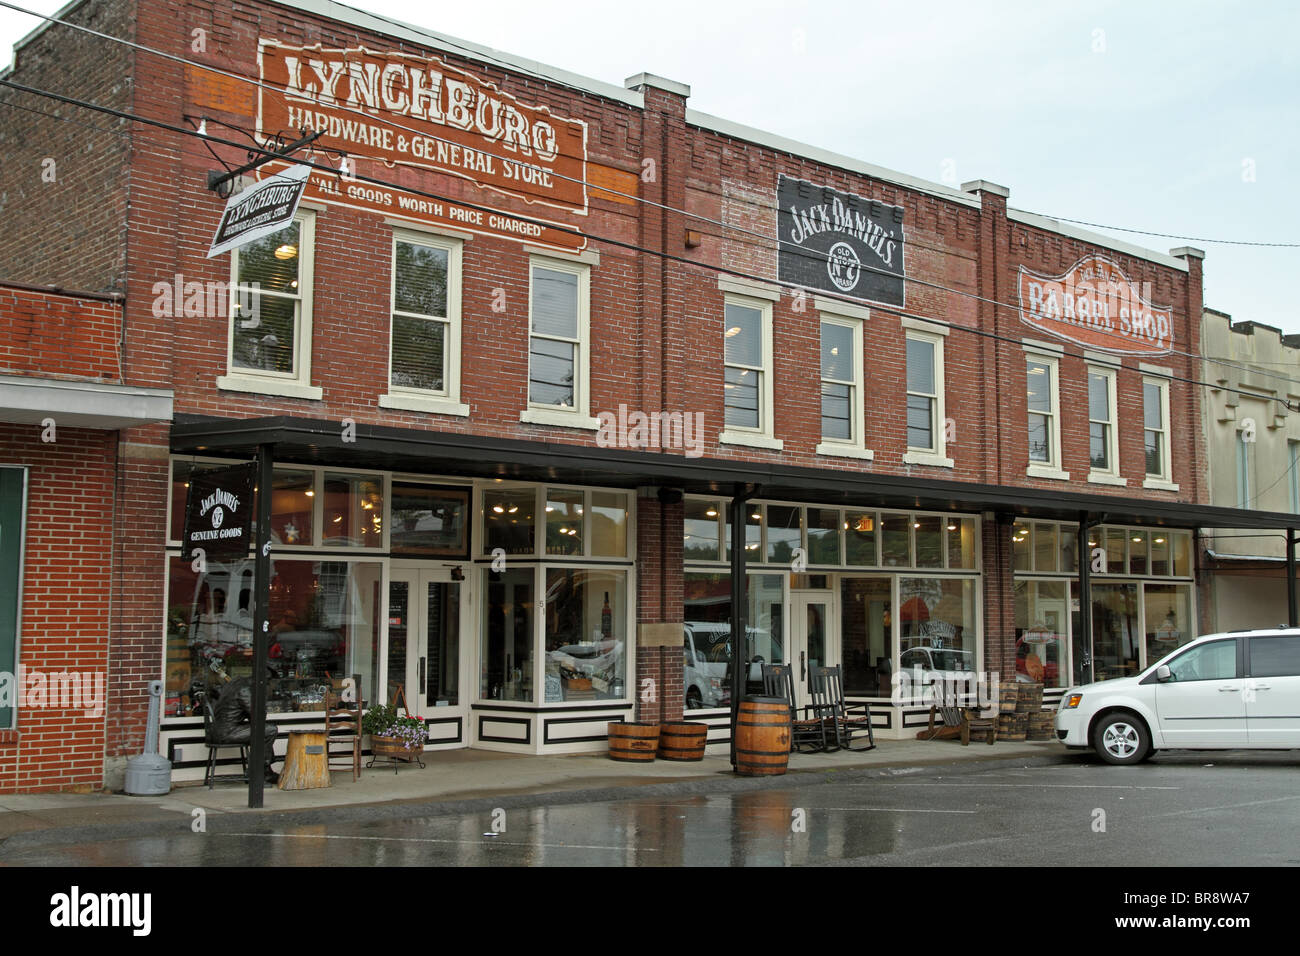 jack daniels hardware general store and barrel shop lynchburg stock photo 31542959 alamy. Black Bedroom Furniture Sets. Home Design Ideas